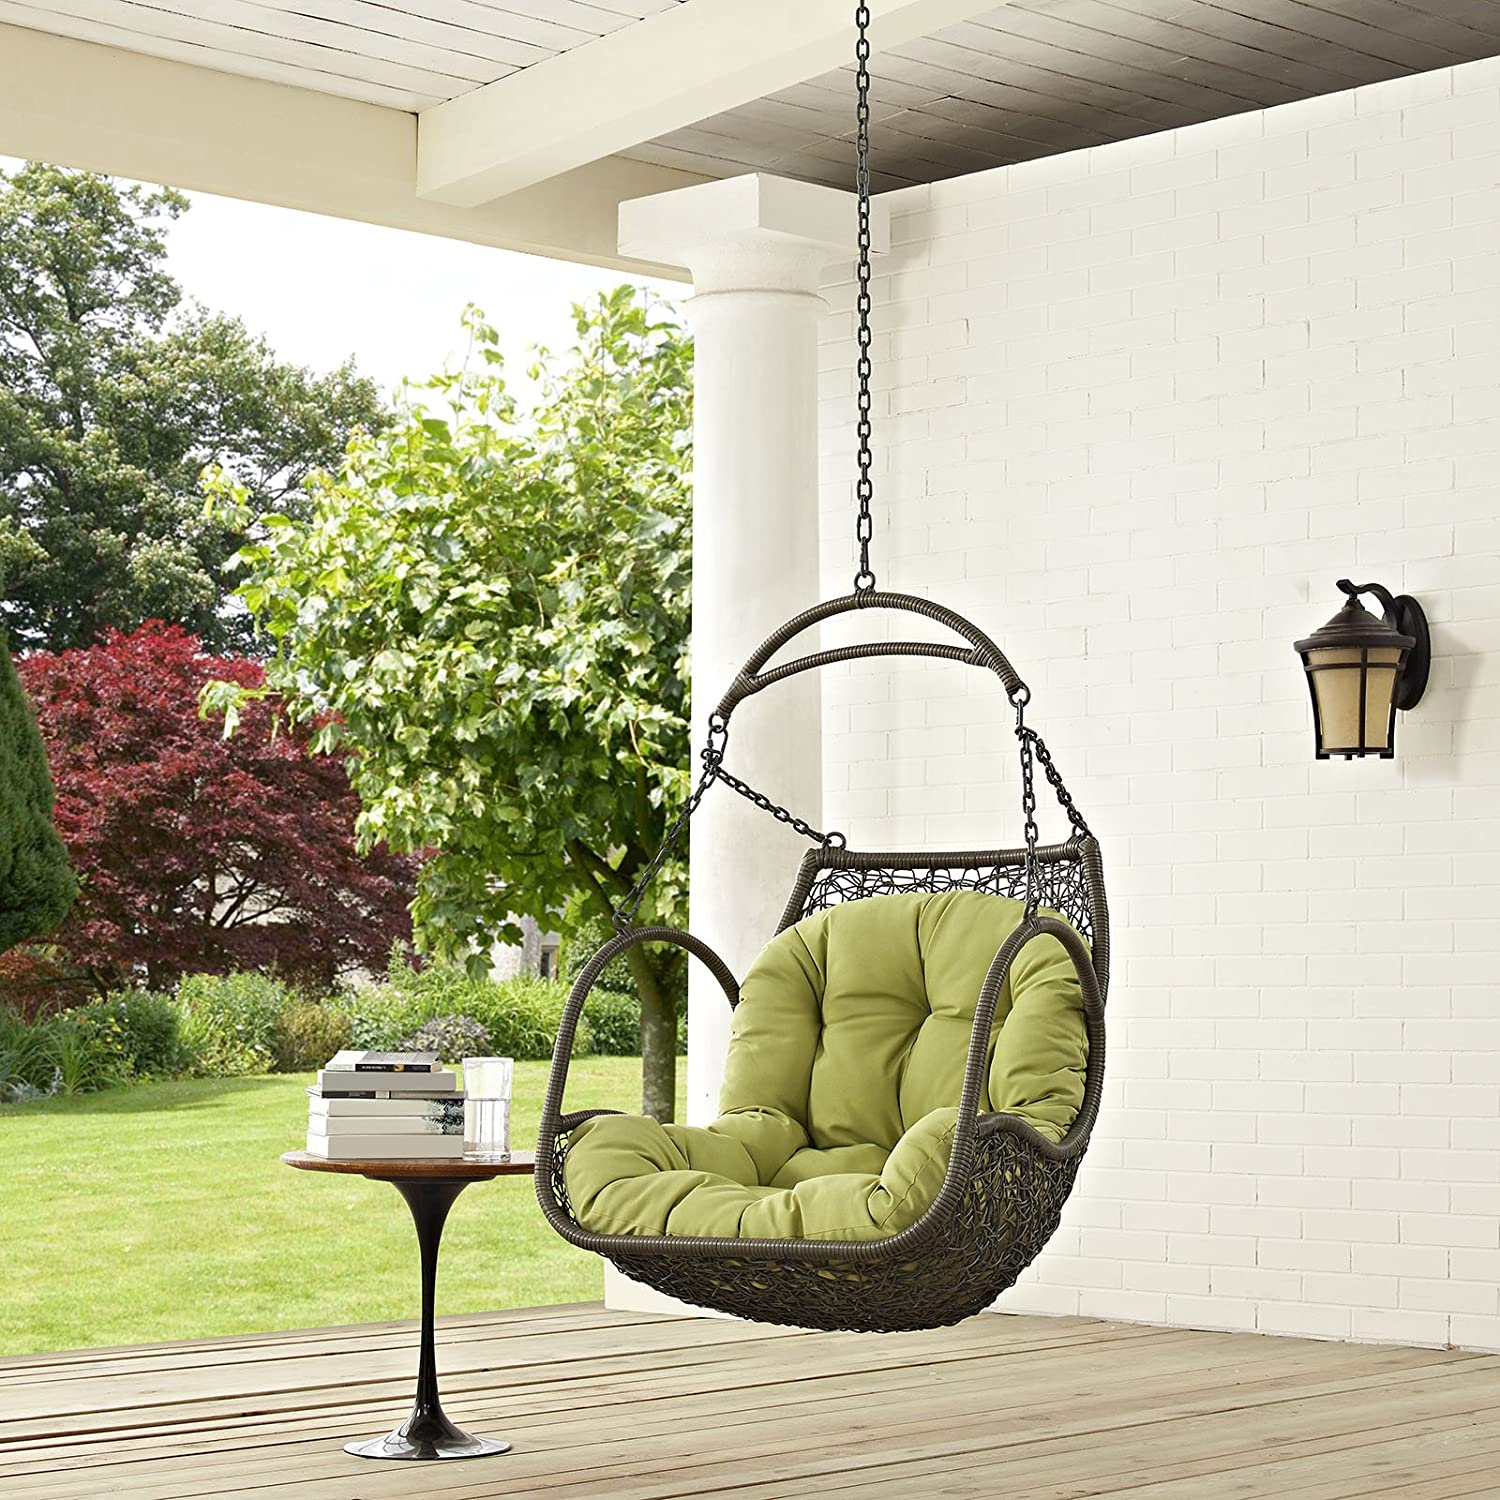 Modway EEI-2659-PER-SET Arbor Outdoor Patio Balcony Porch Lounge Swing Chair Set with Hanging Steel Chain Peridot